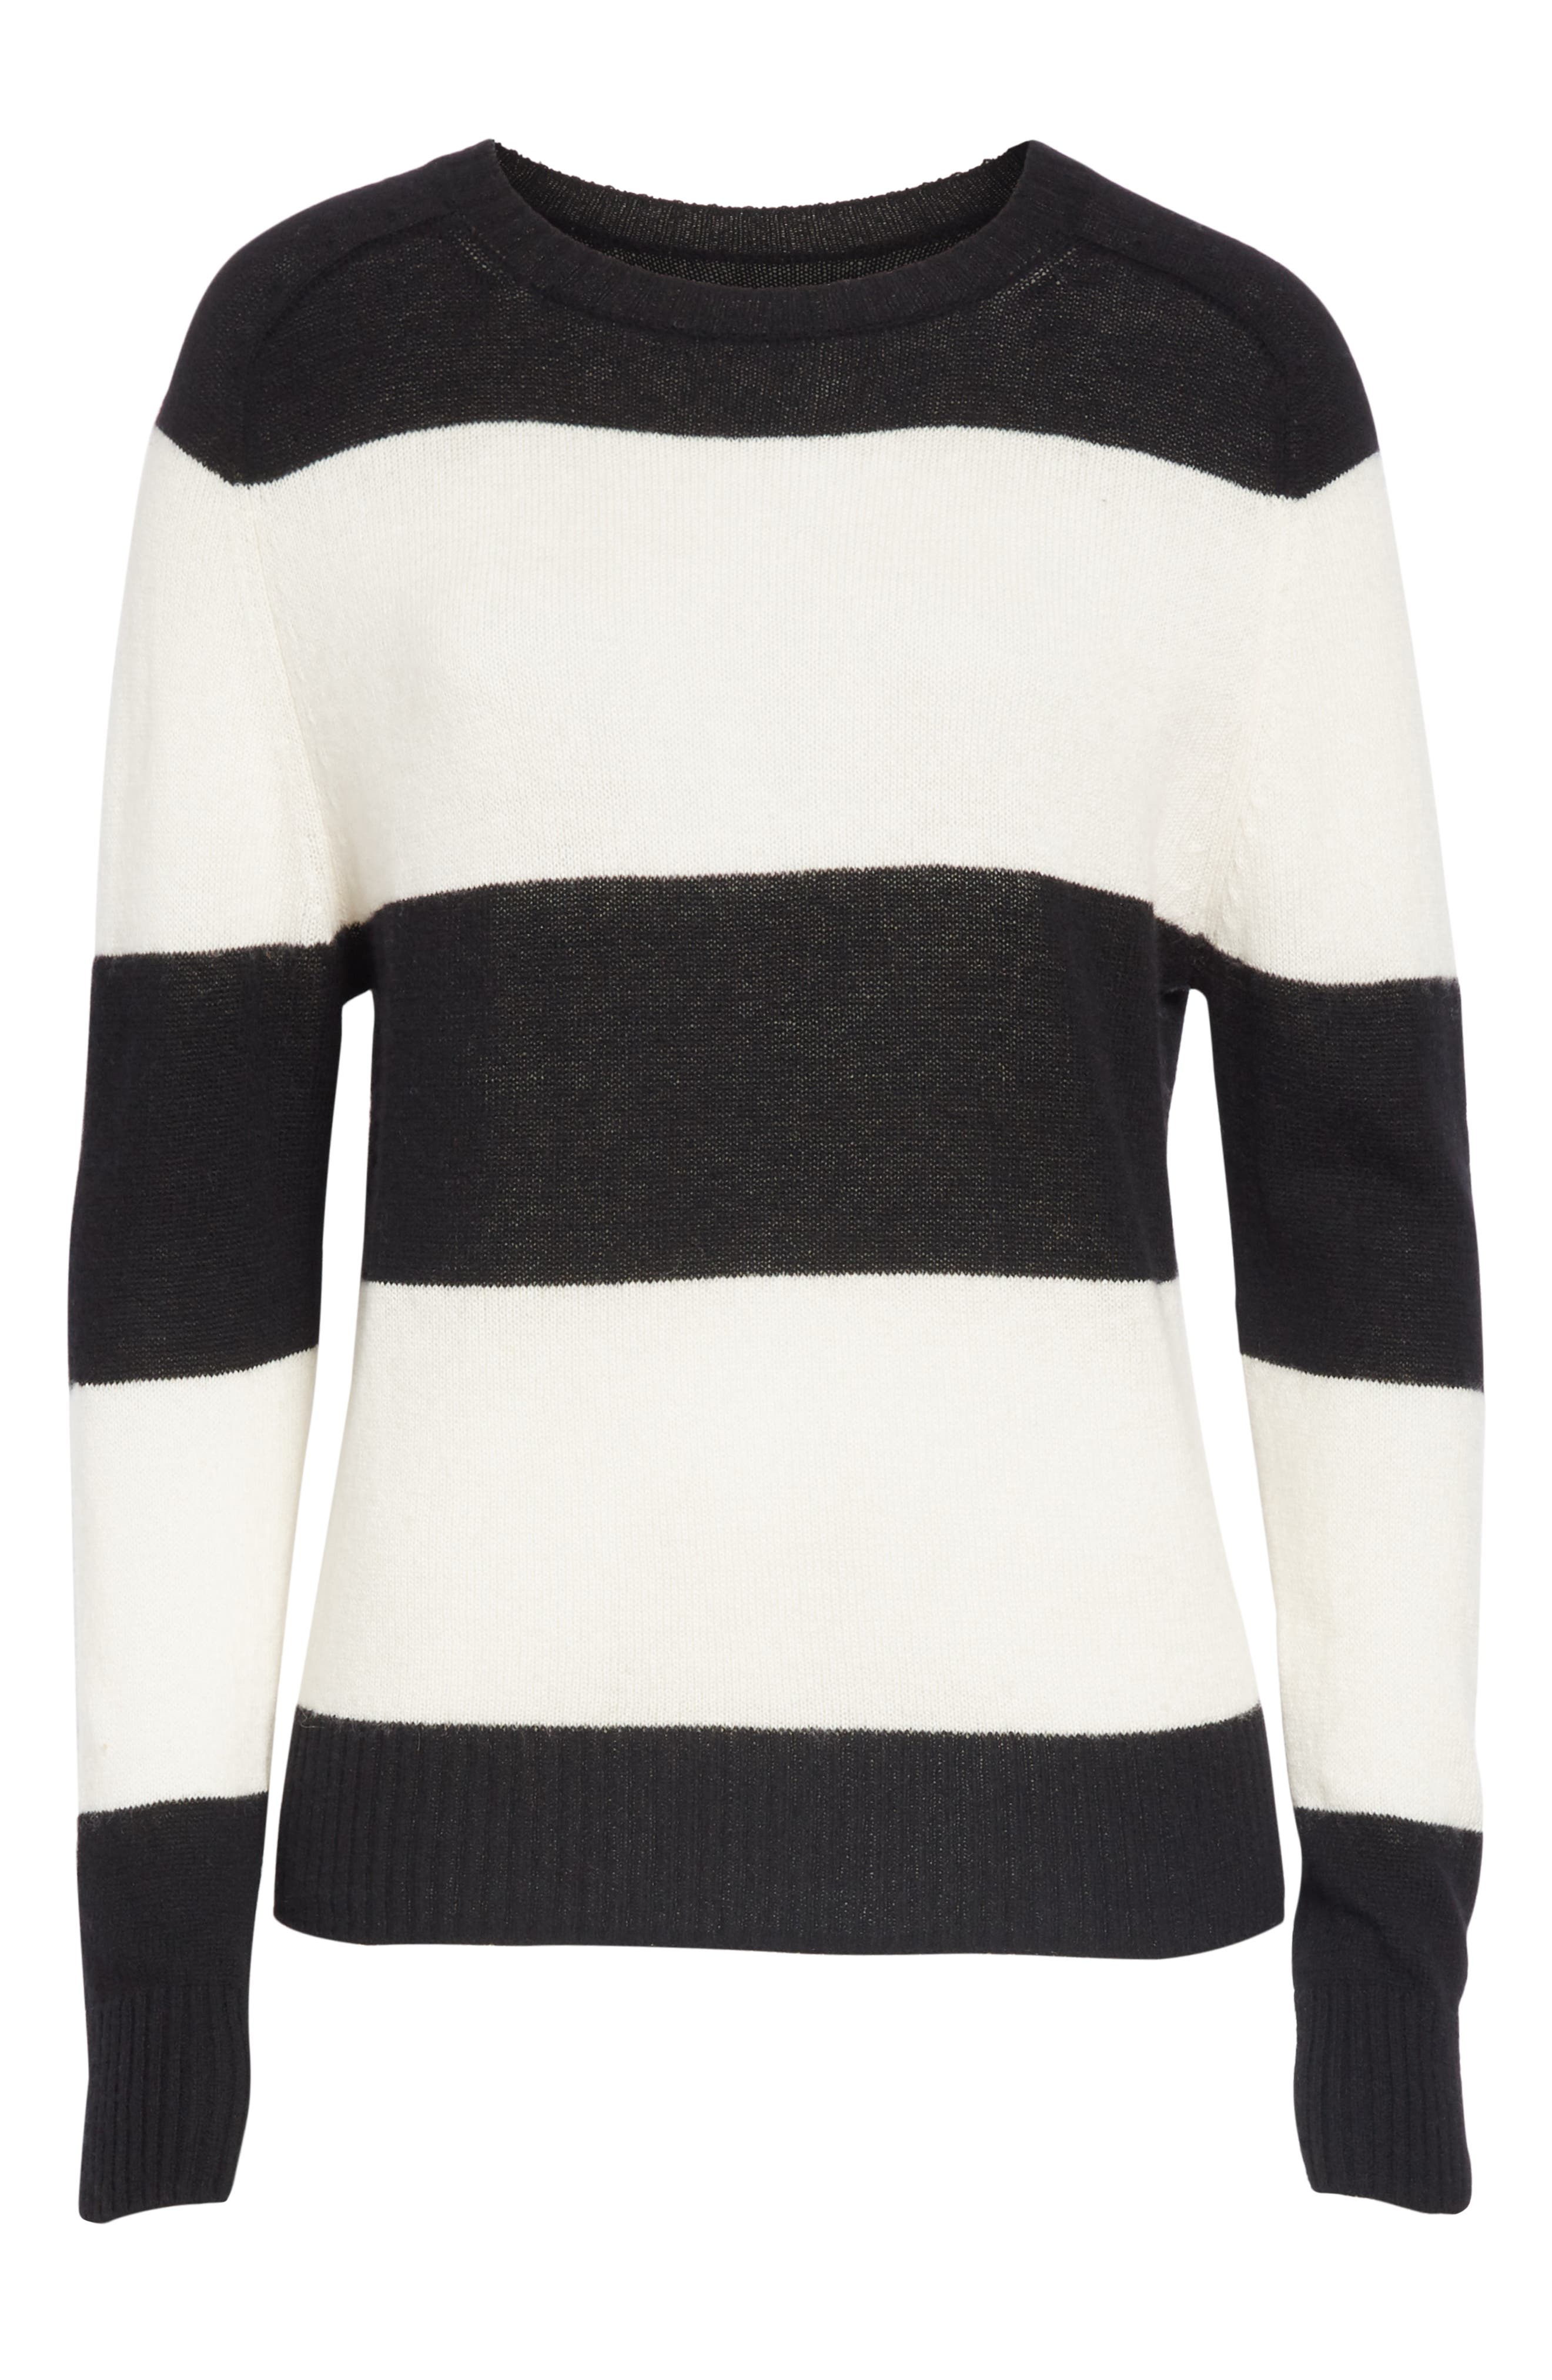 RE/DONE, Stripe Wool & Cashmere Sweater, Alternate thumbnail 6, color, BLACK/ IVORY